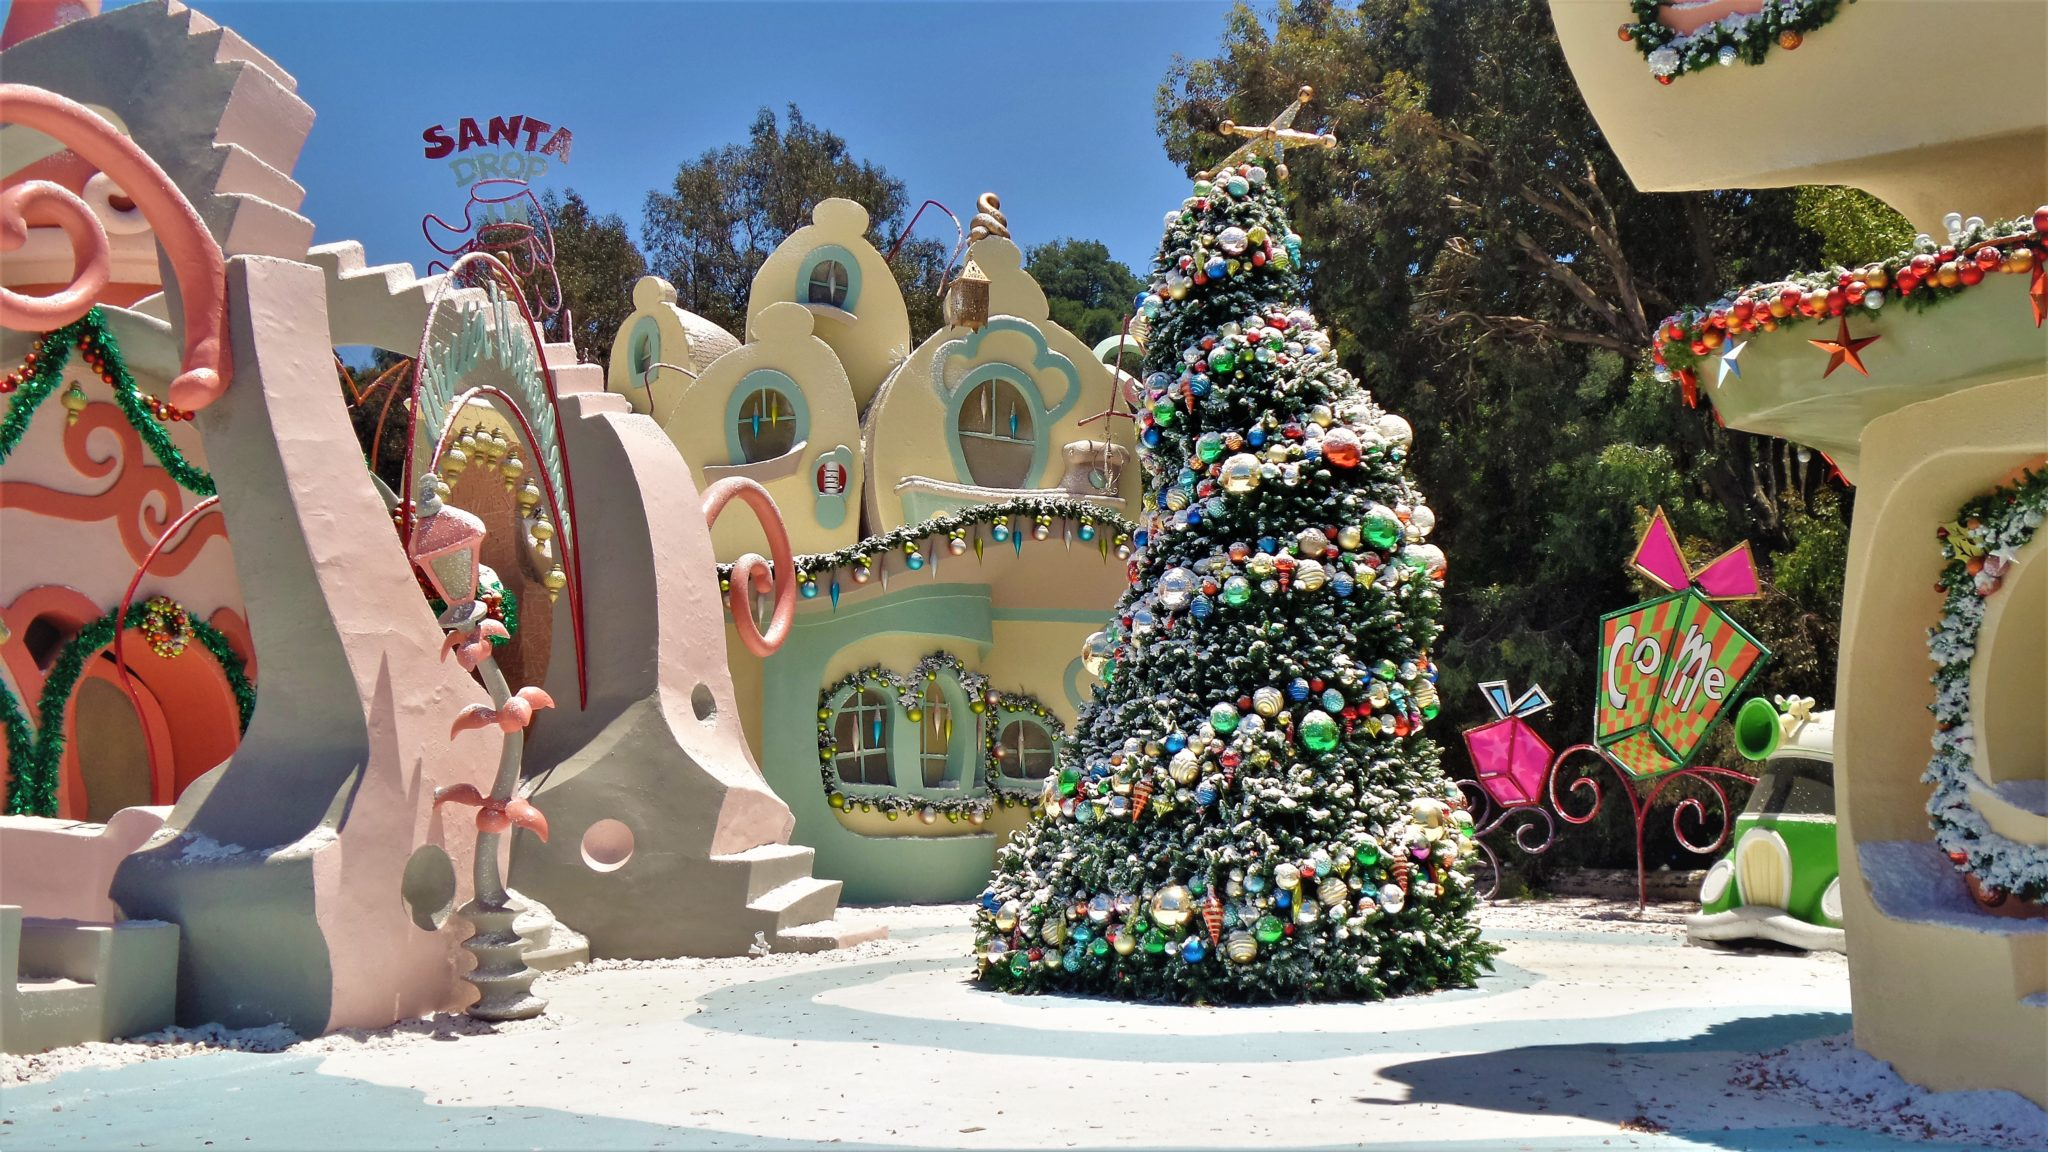 Whoville from the Grinch, Universal Studios Hollywood Studio Tour